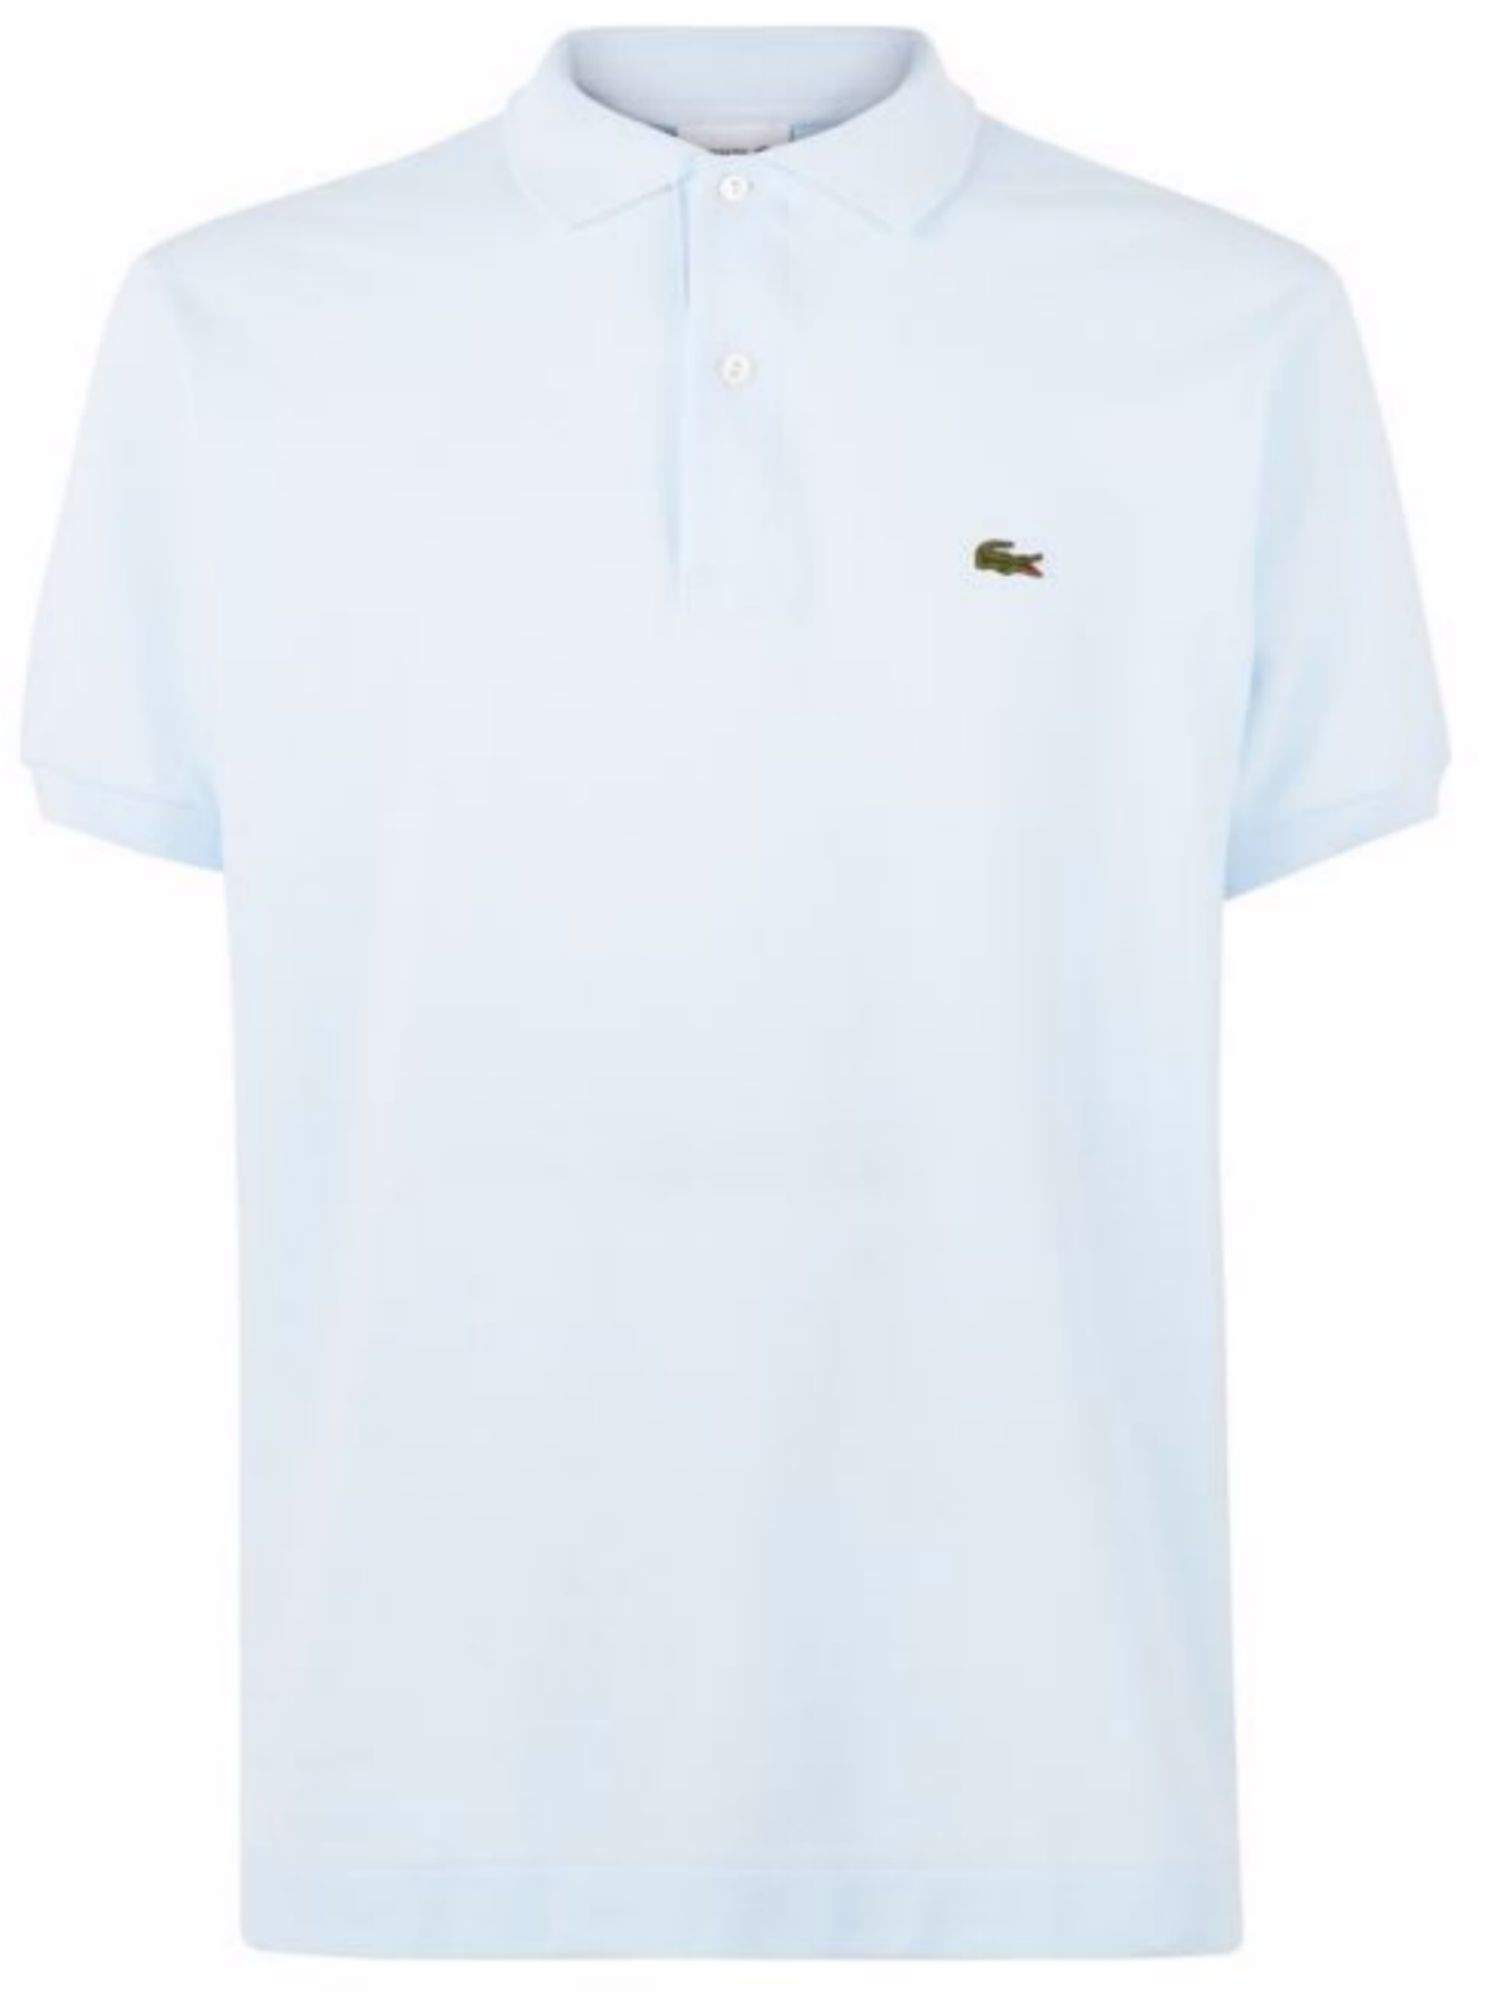 Men's Lacoste Slim Fit Polo in Pique, Marine